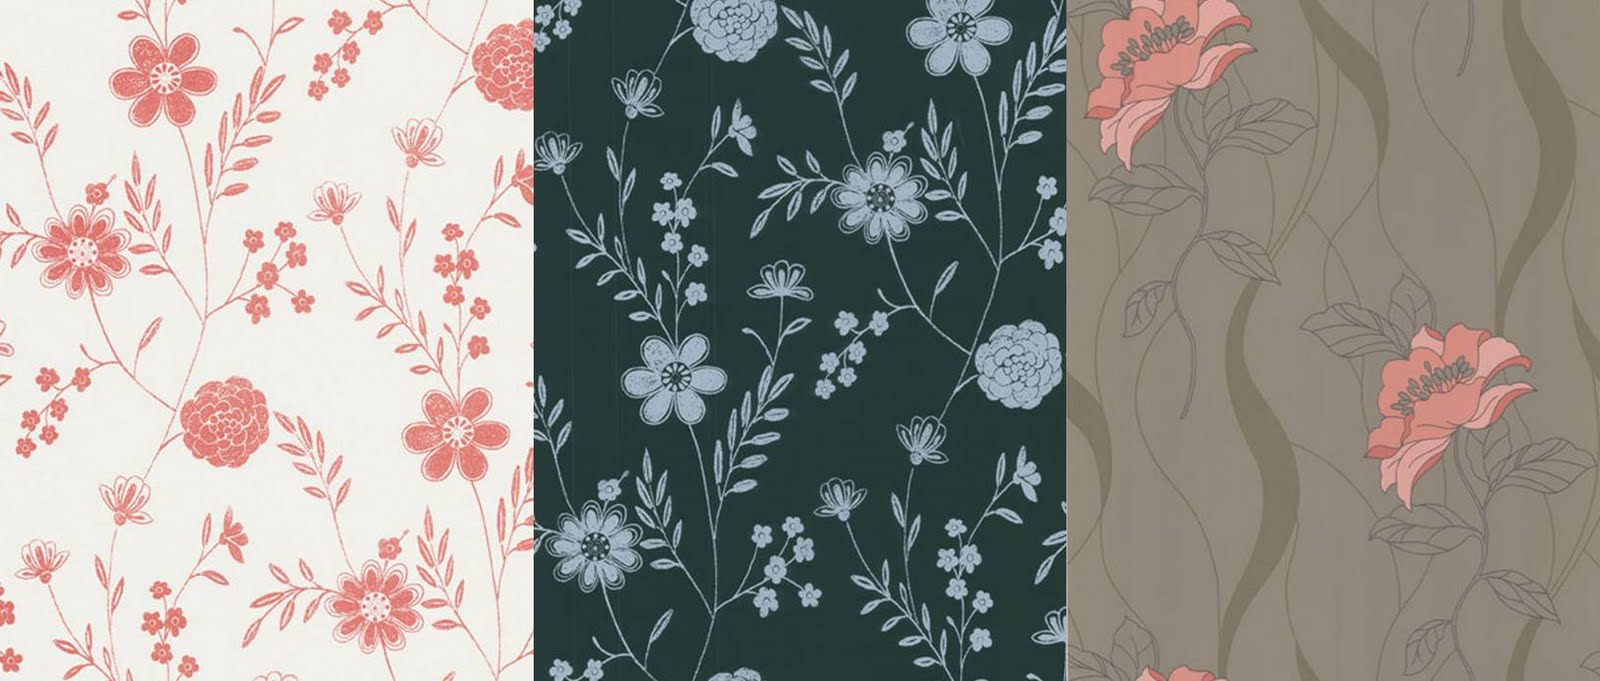 just found out about Sherwin Williams Easy Change wallpaper 1600x681